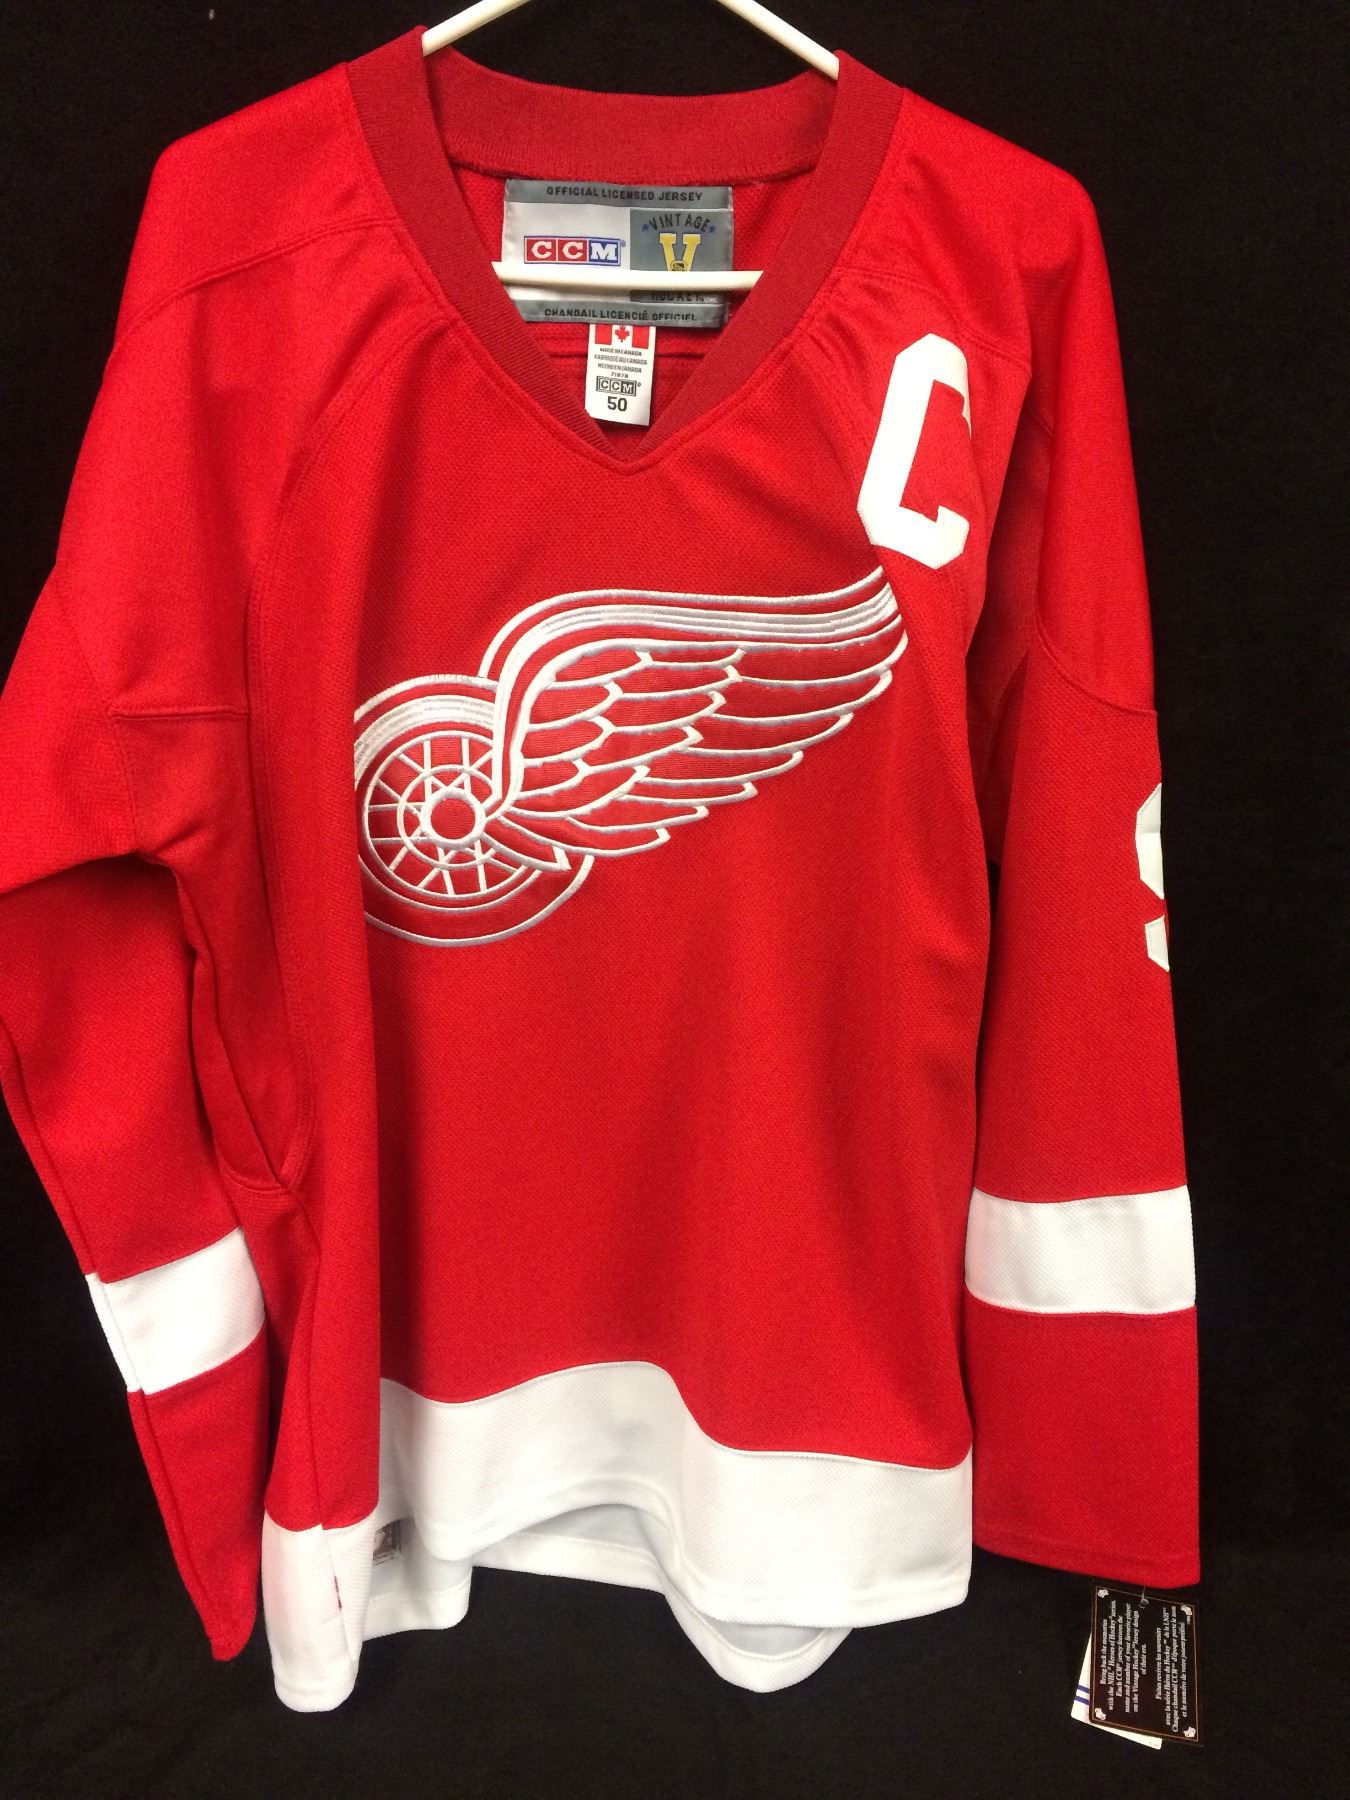 new product 1a44f 15caf GORDIE HOWE AUTOGRAPHED RED WINGS HOCKEY JERSEY INSCRIBED MR. HOCKEY W/ COA